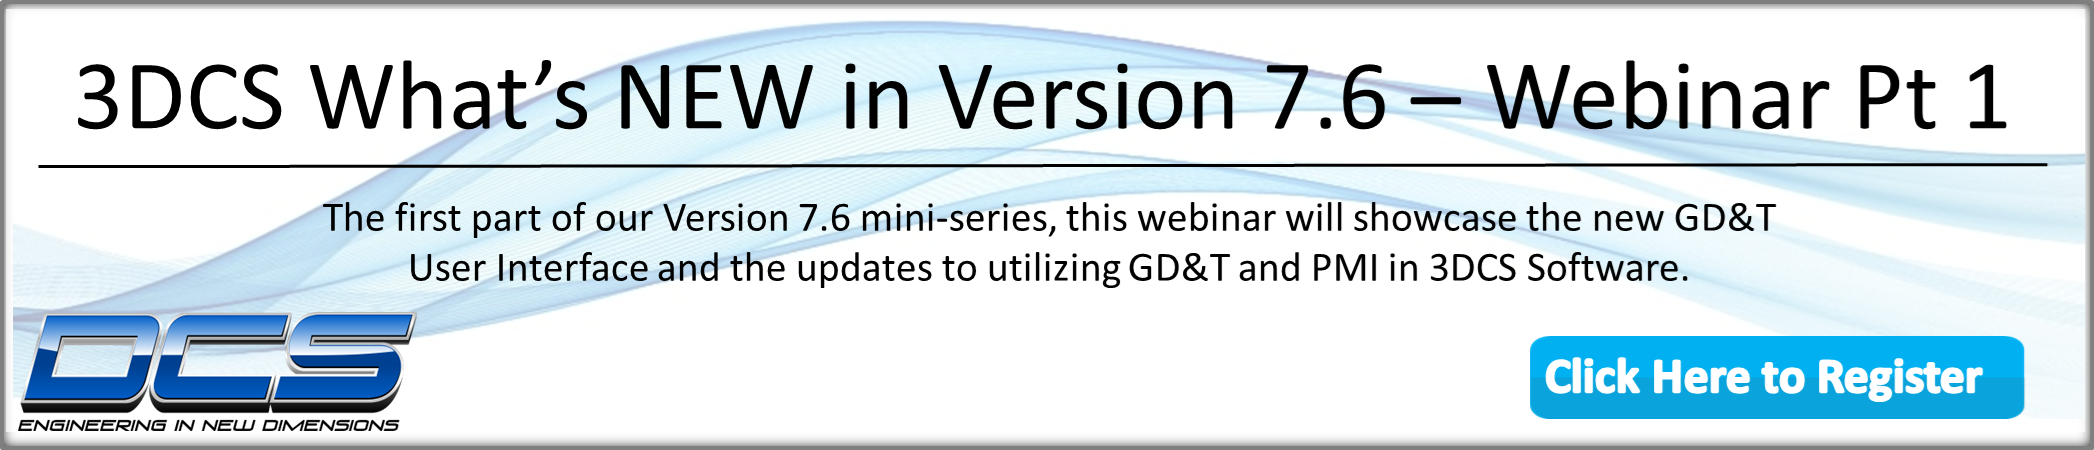 Webinar Thurs, Feb 21st - NEW 3DCS Version 7.6 GD&T Interface and Application